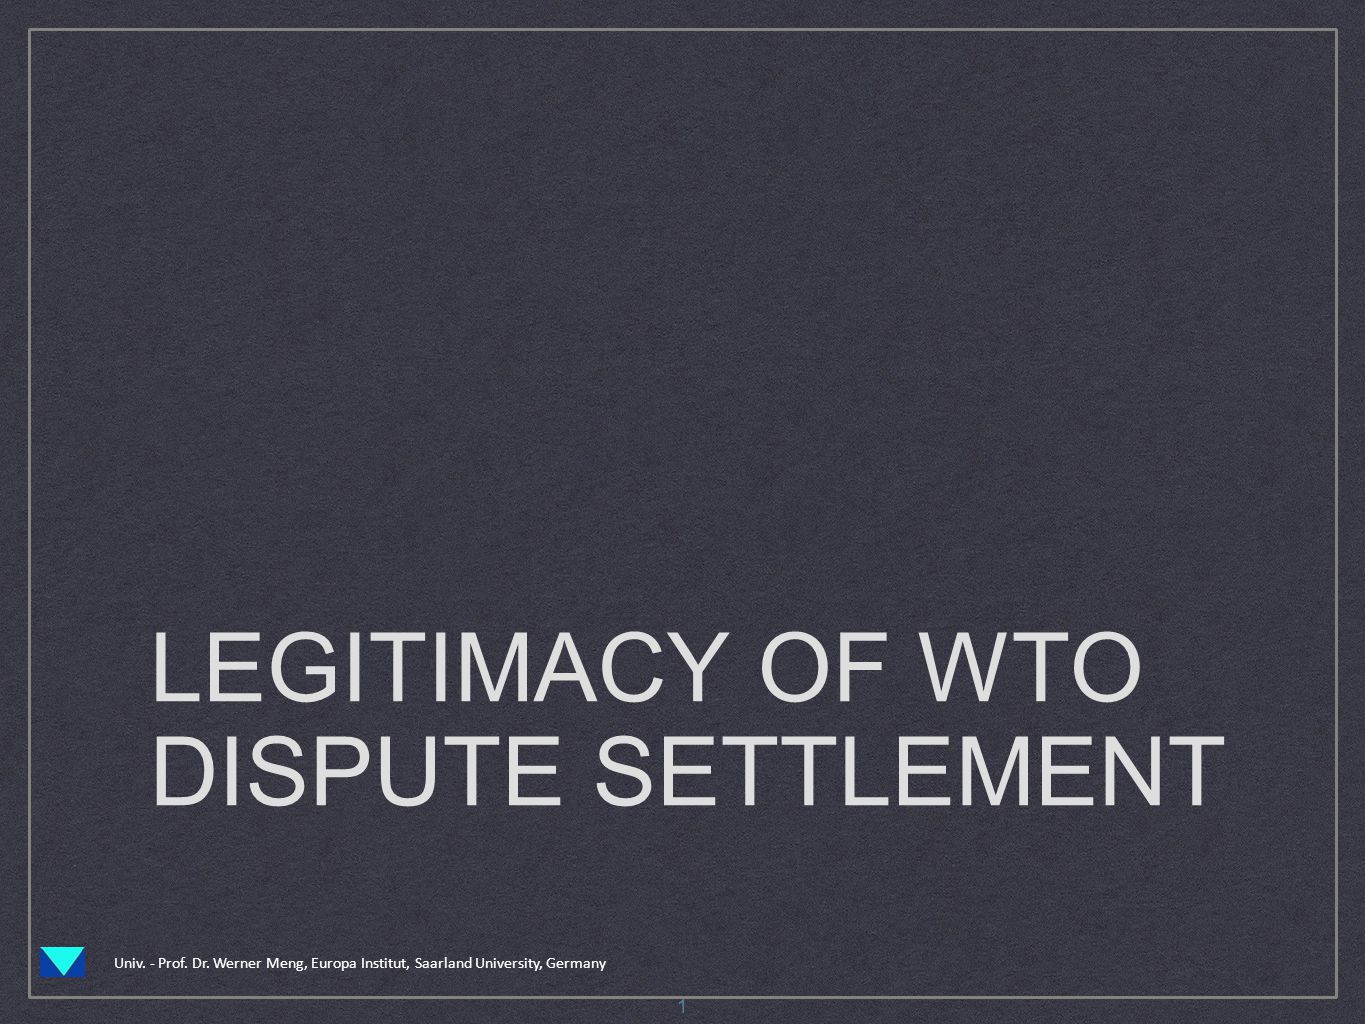 Univ. - Prof. Dr. Werner Meng, Europa Institut, Saarland University, Germany LEGITIMACY OF WTO DISPUTE SETTLEMENT 1